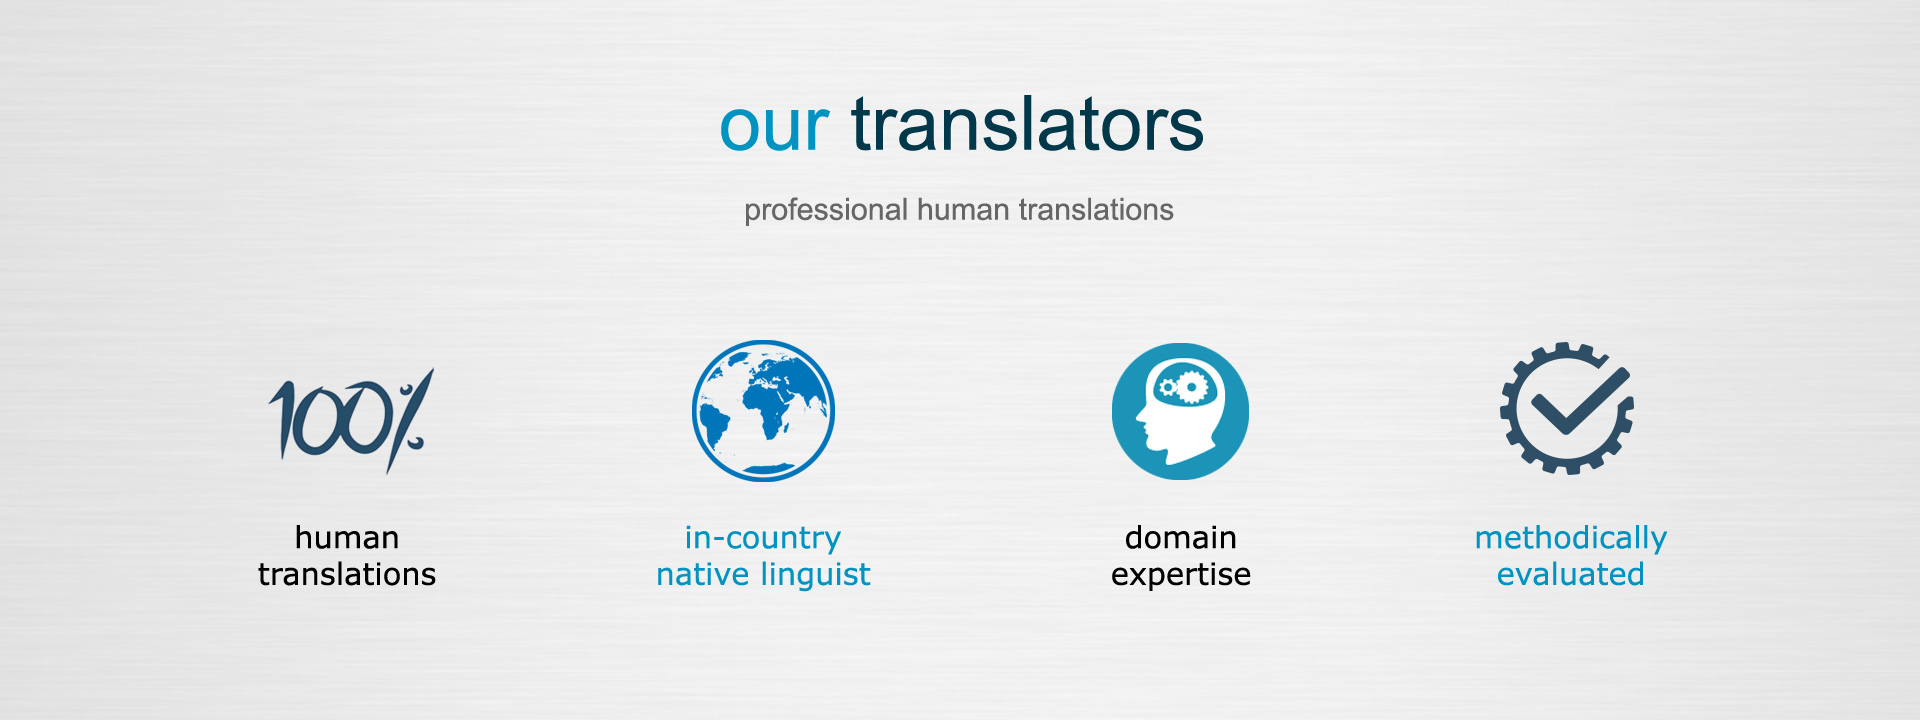 Our translators